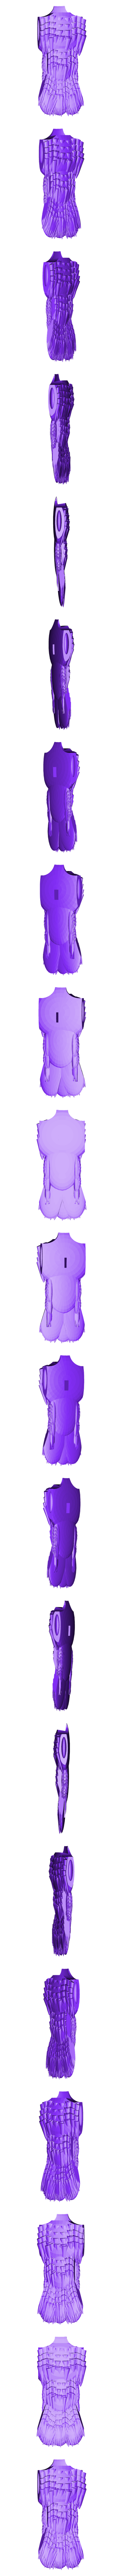 phoenix_torso_with_hole.stl Download free STL file Elf Phoenix • 3D printing model, mrhers2